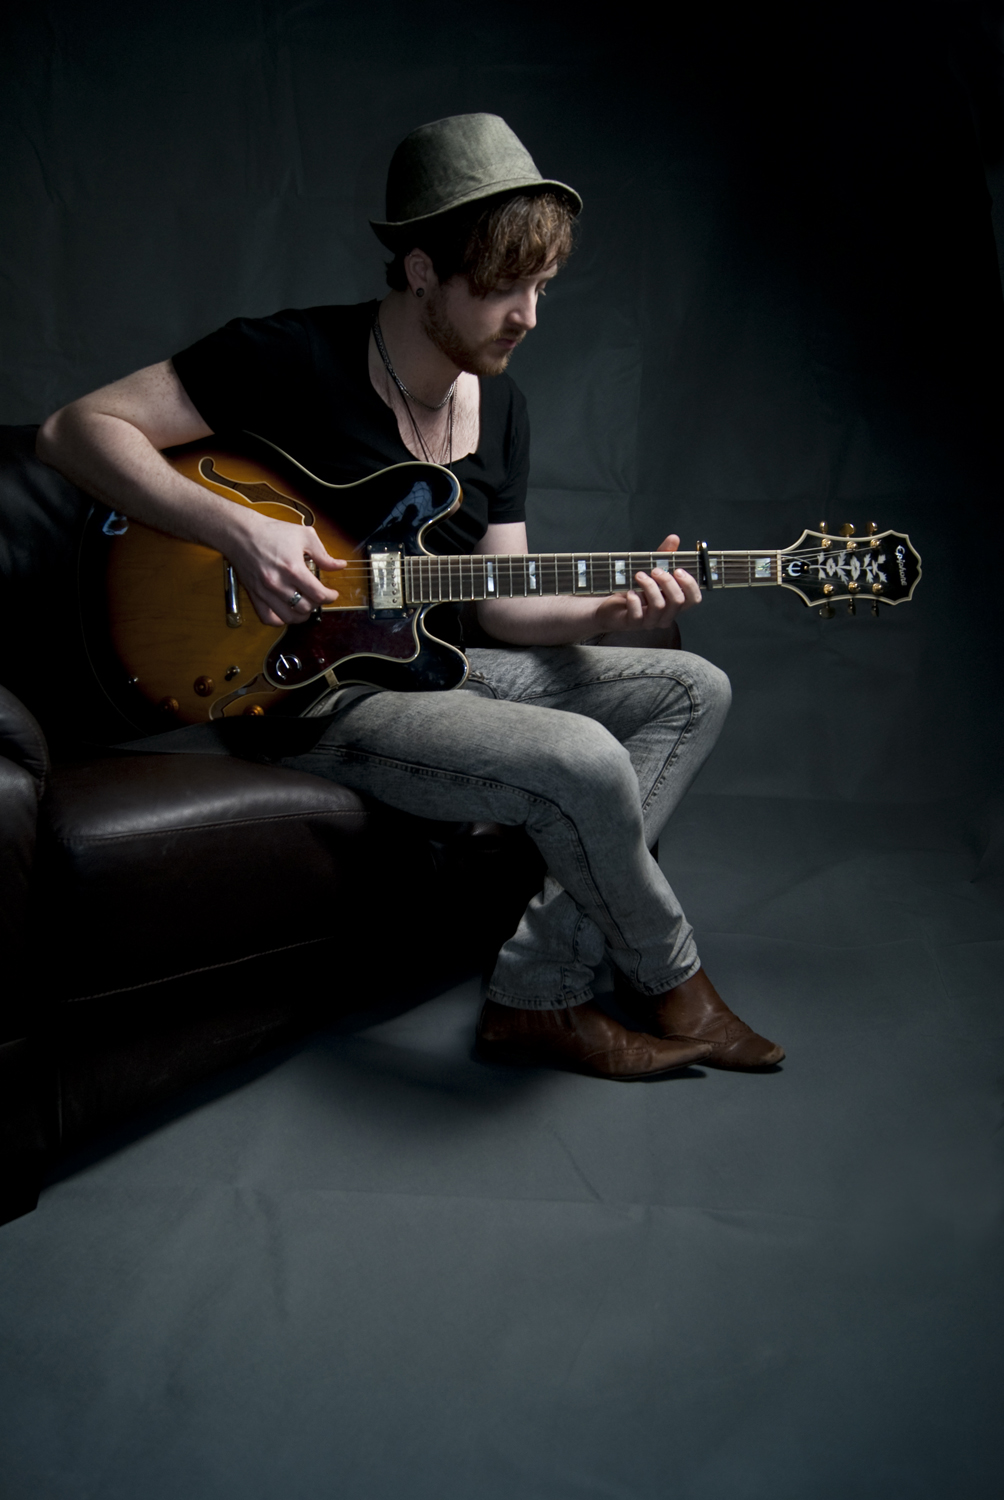 Lewis - freelance musician - Portrait photography in portslade, Hove and Bright, Sussex